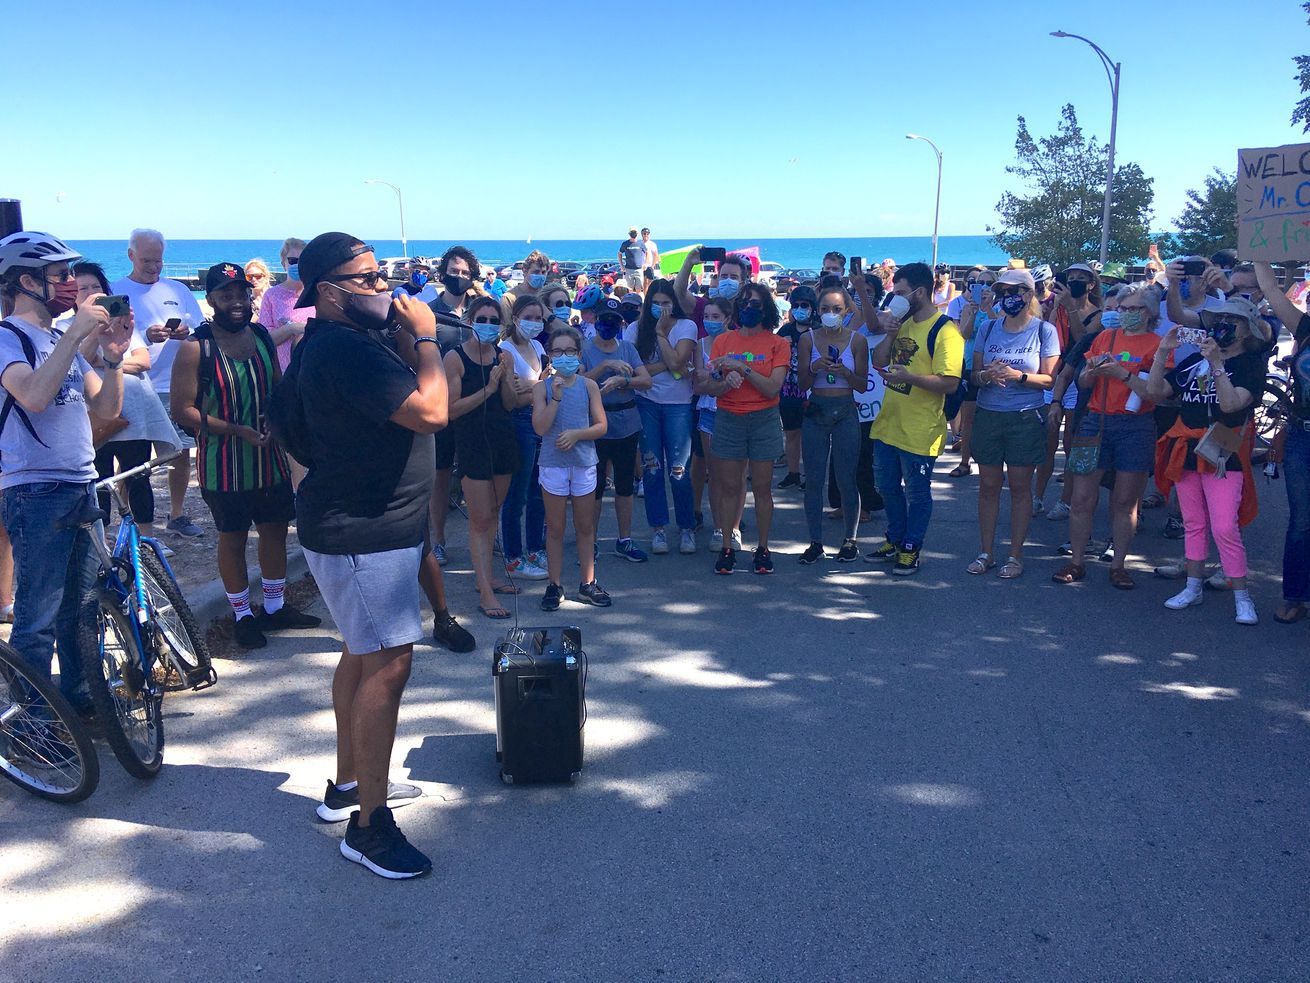 North Shore rallies for man told to leave pier because he's Black: 'It shouldn't happen anywhere'